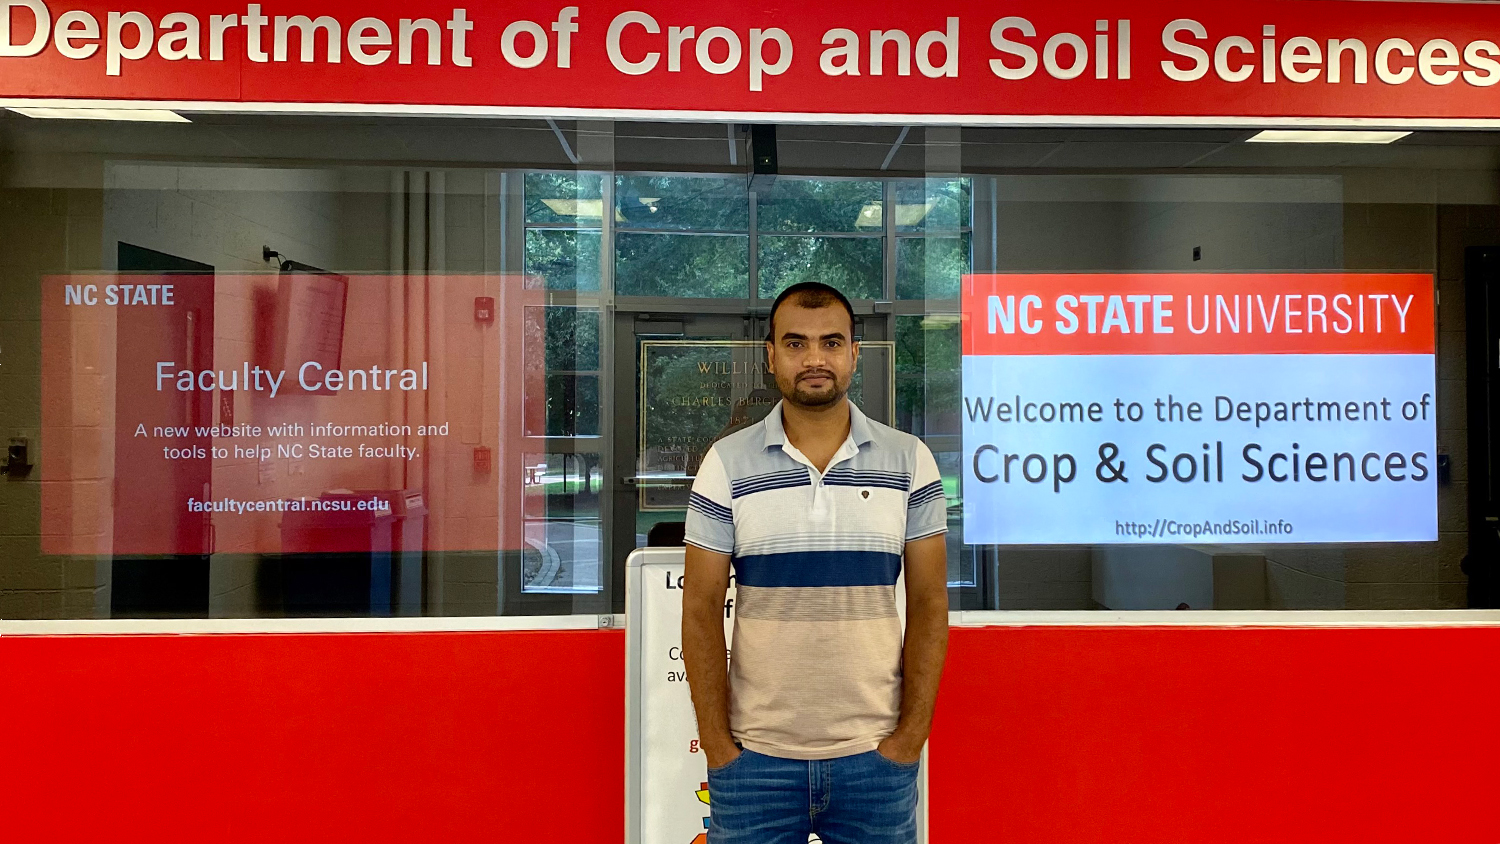 Man in front of NC State display